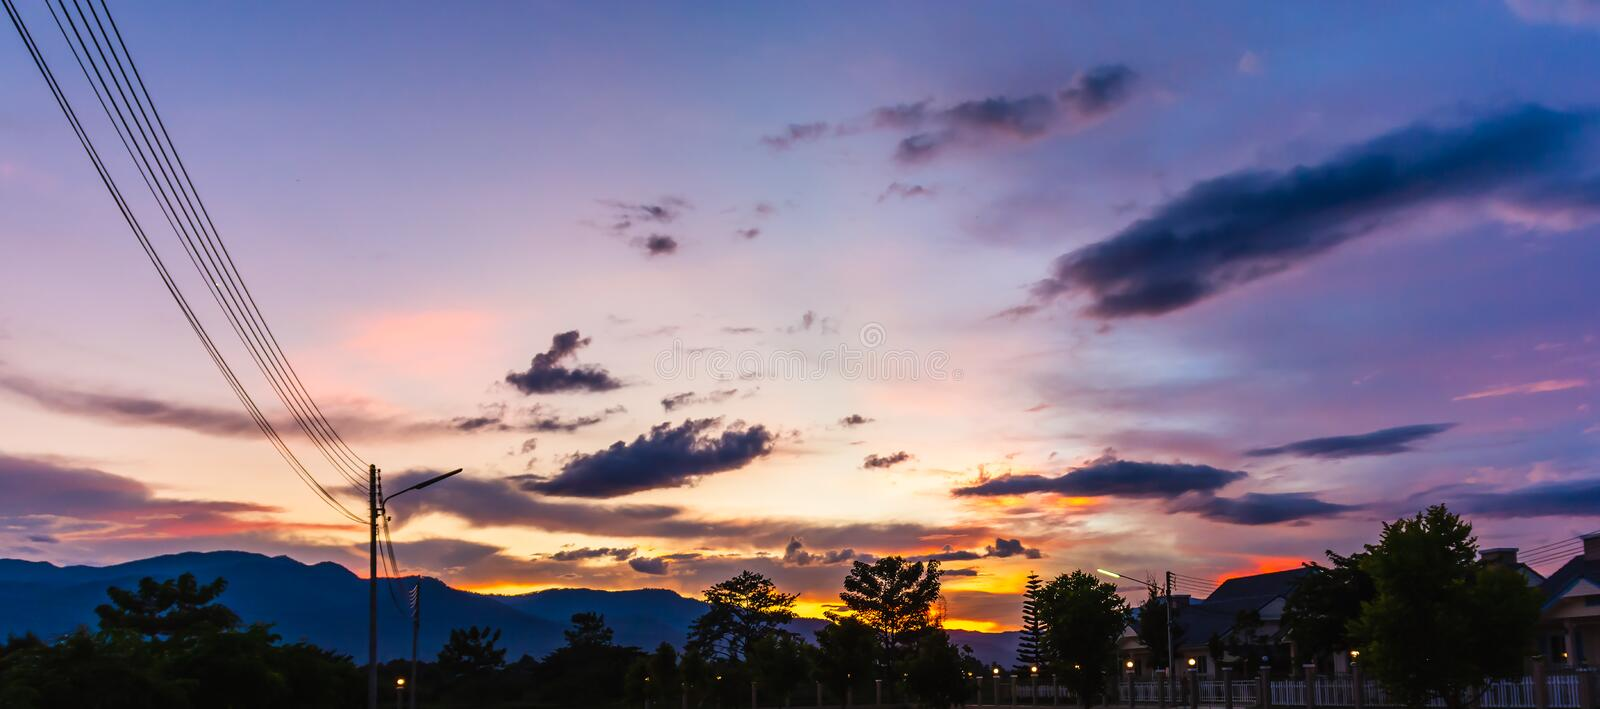 Beautiful twilight sky with mountain house and electric wire. royalty free stock photos